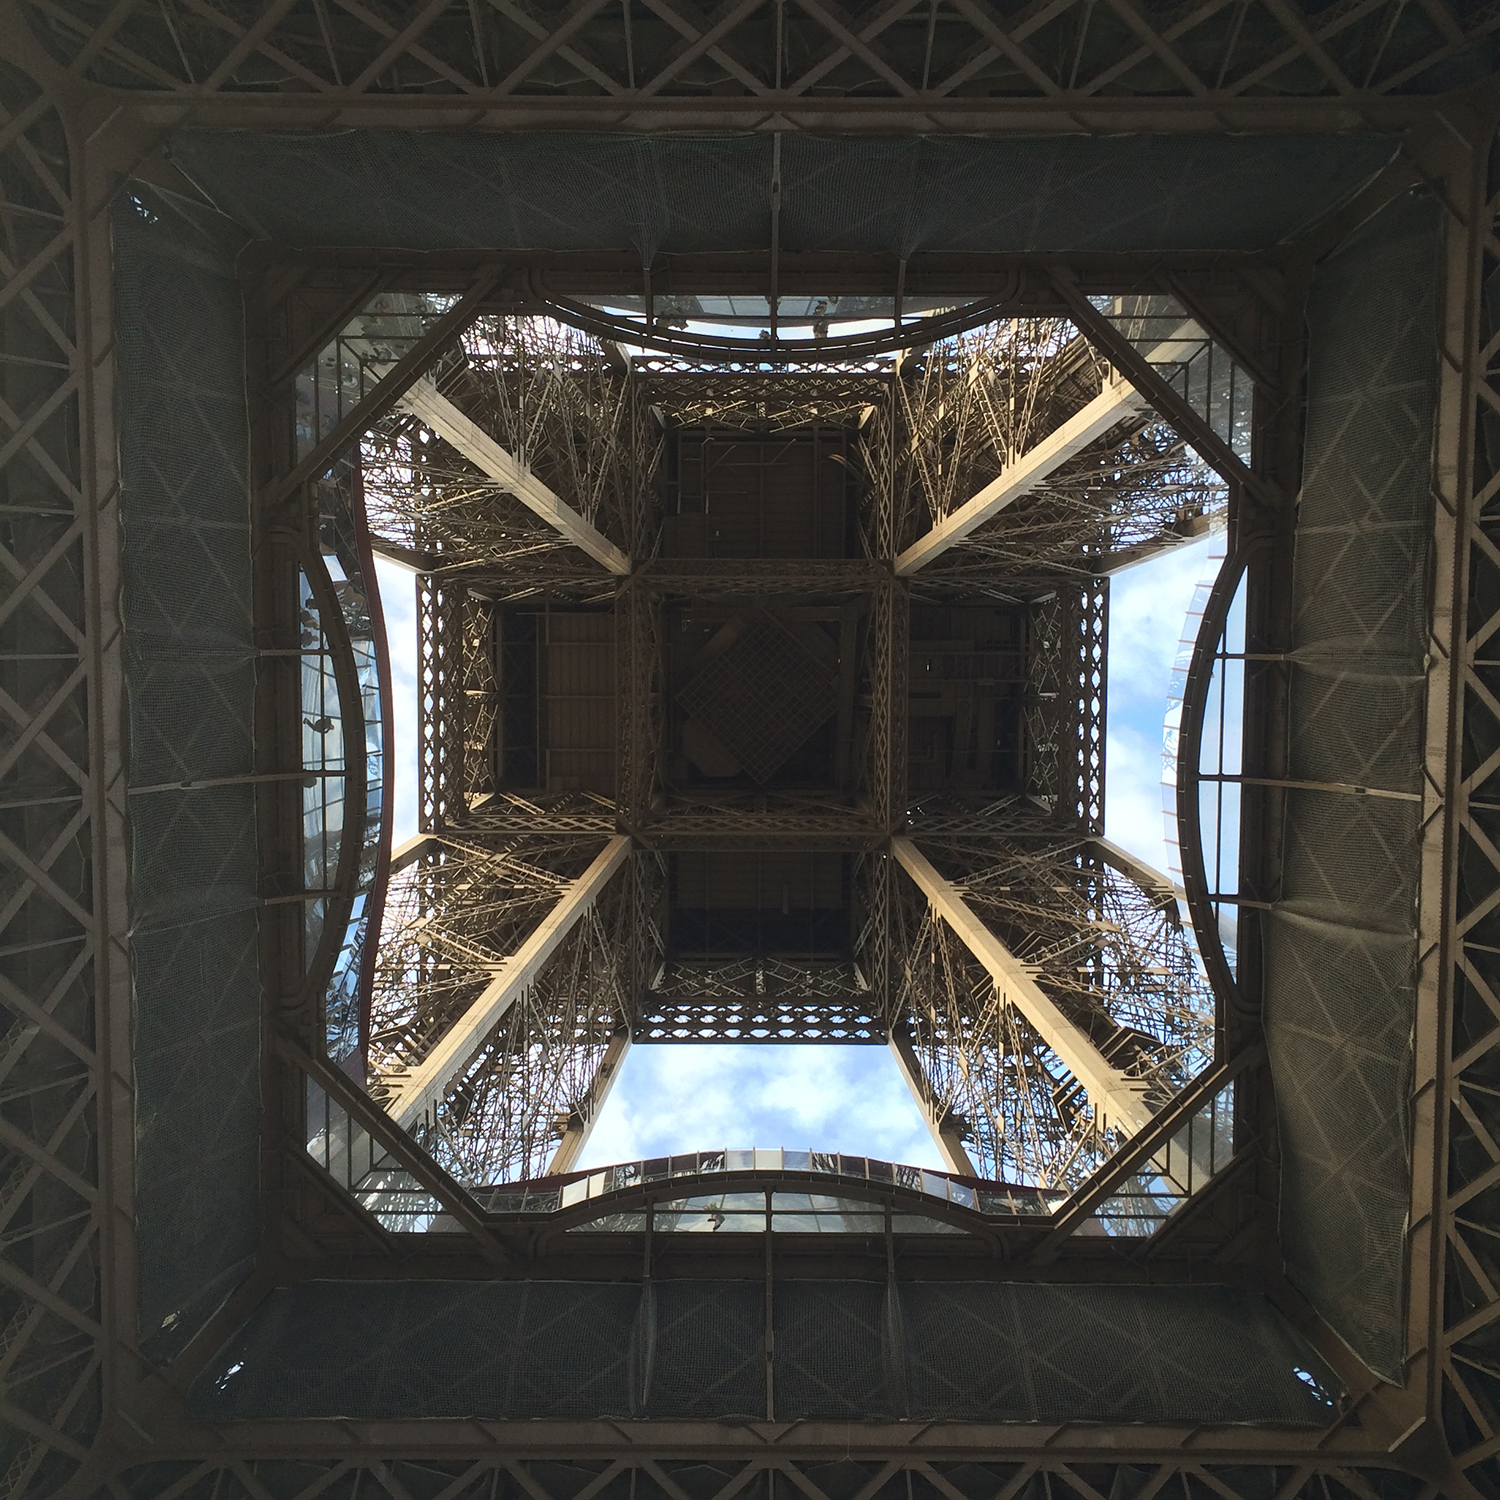 underneath the Eiffel Tower looking up